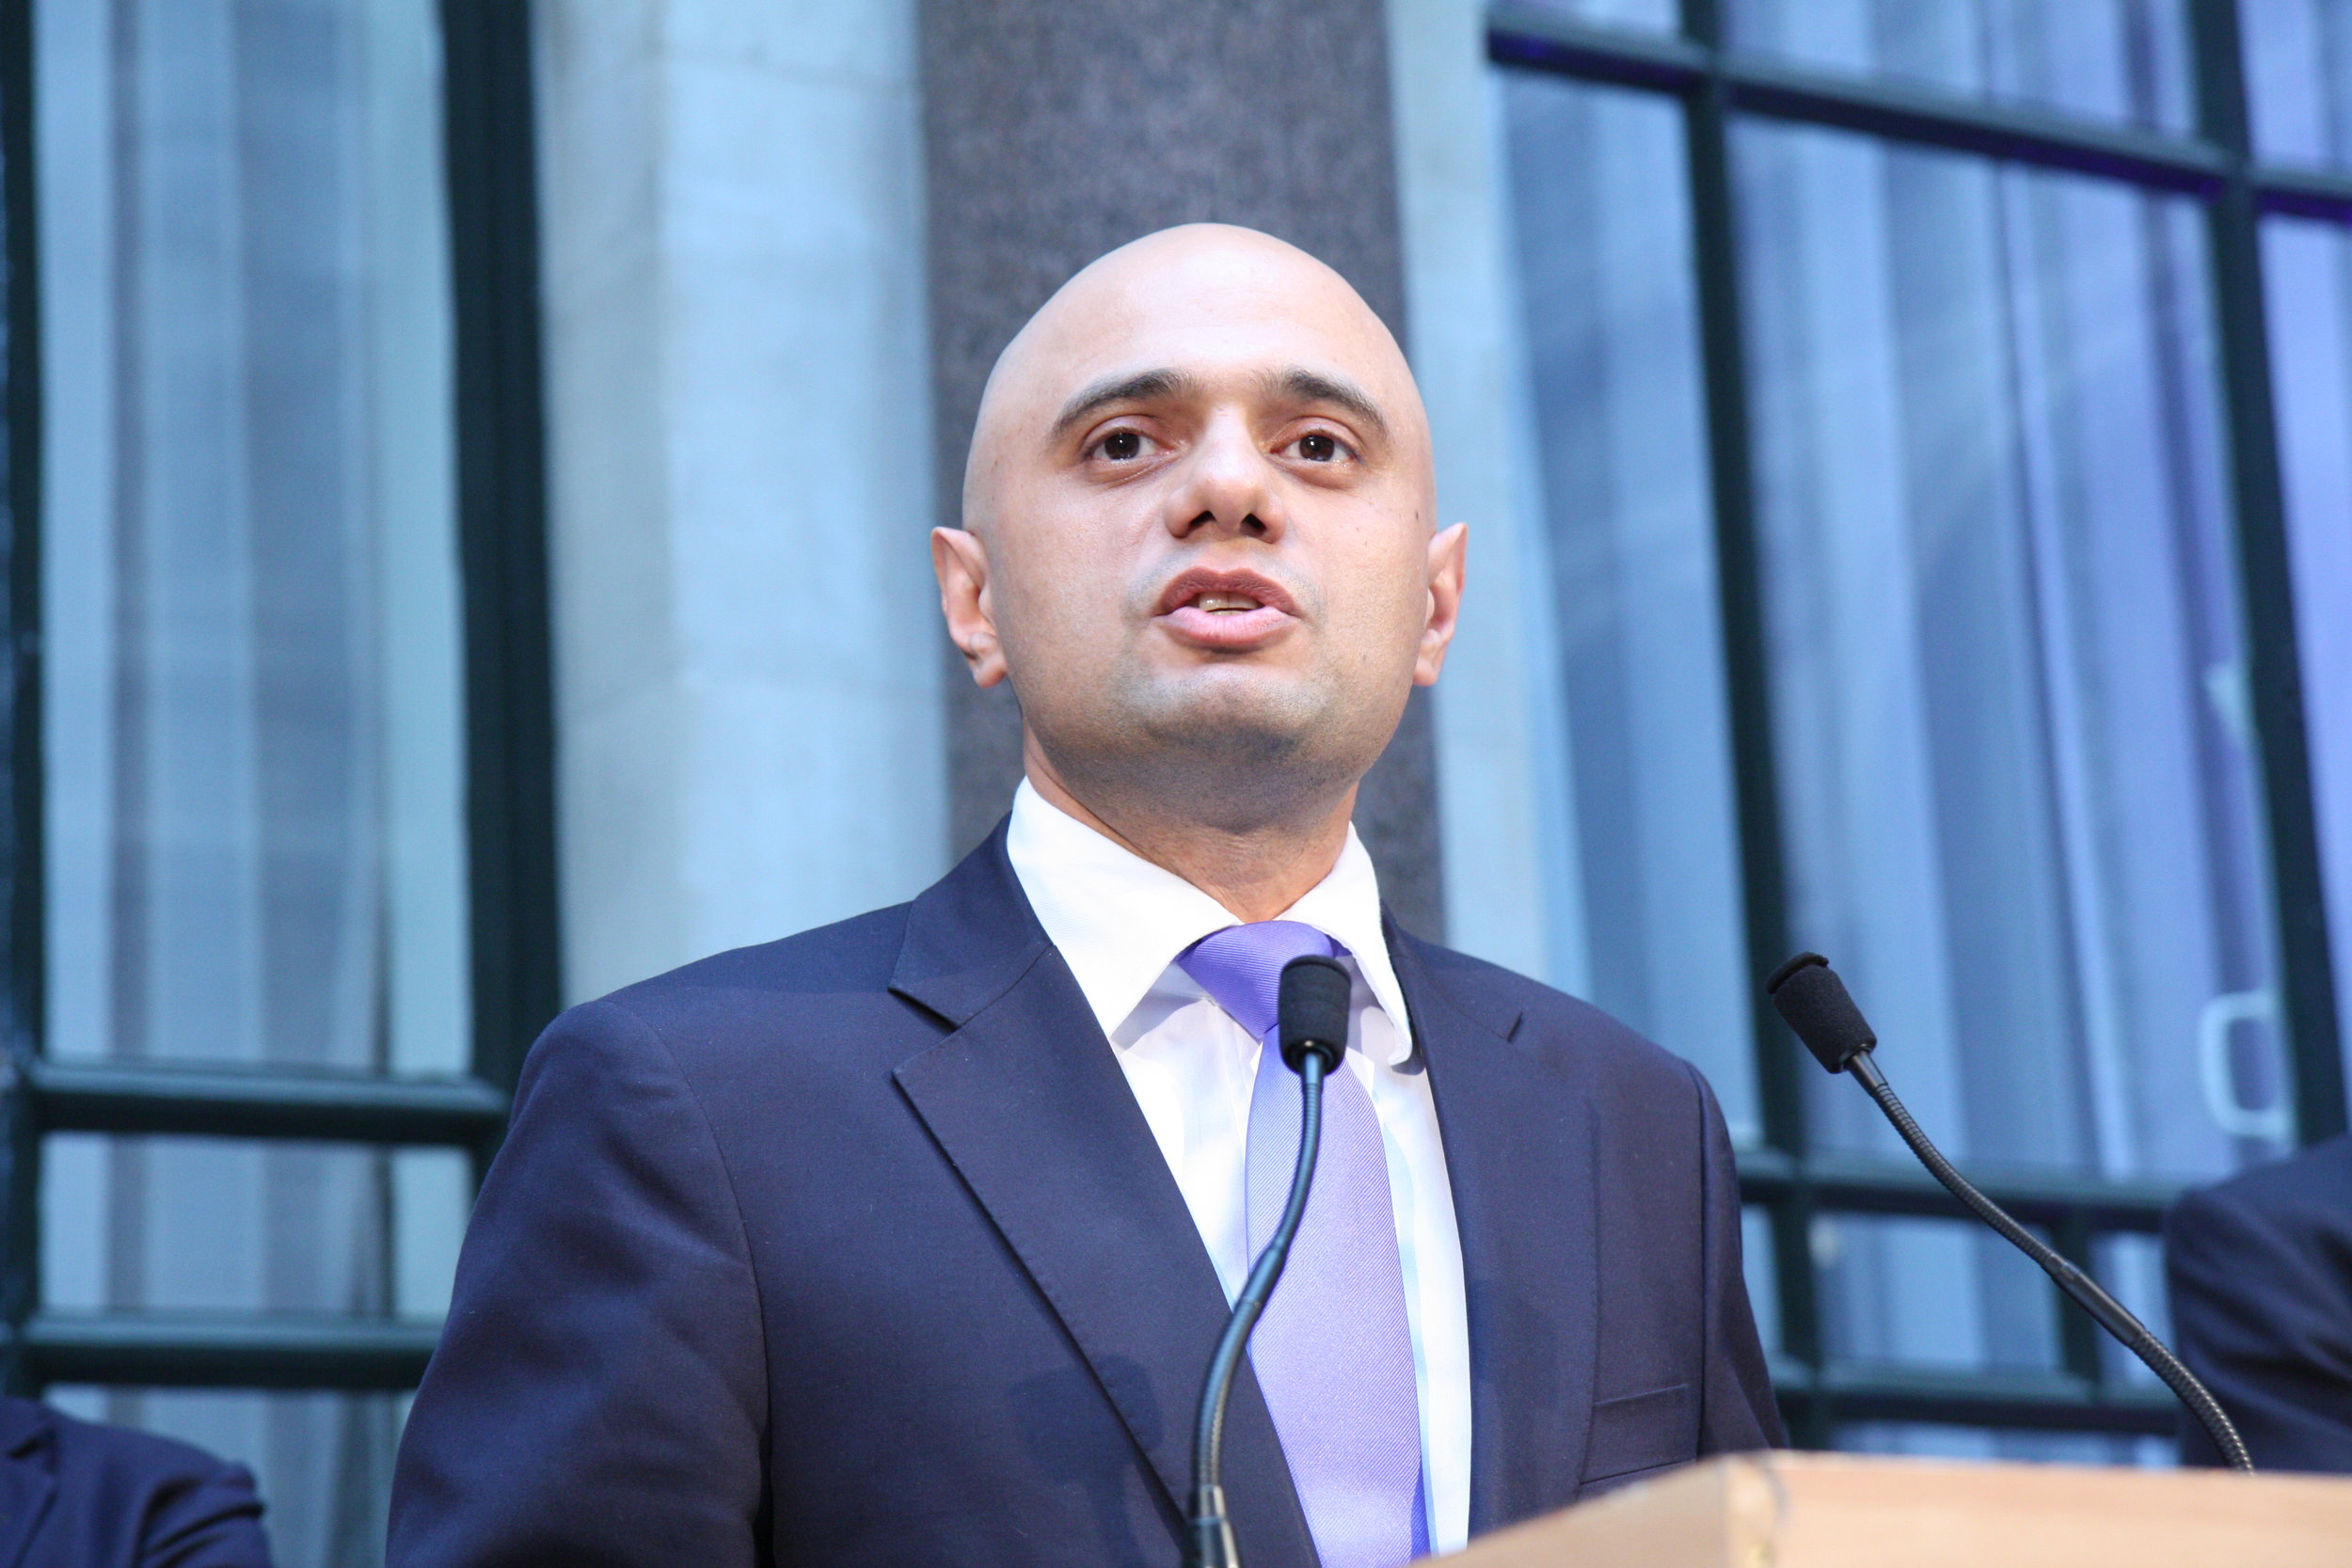 Home Secretary Sajid Javid speaking at an event in 2014, when he was Secretary of State for Culture, Media and Sport  [Wikimedia Commons].